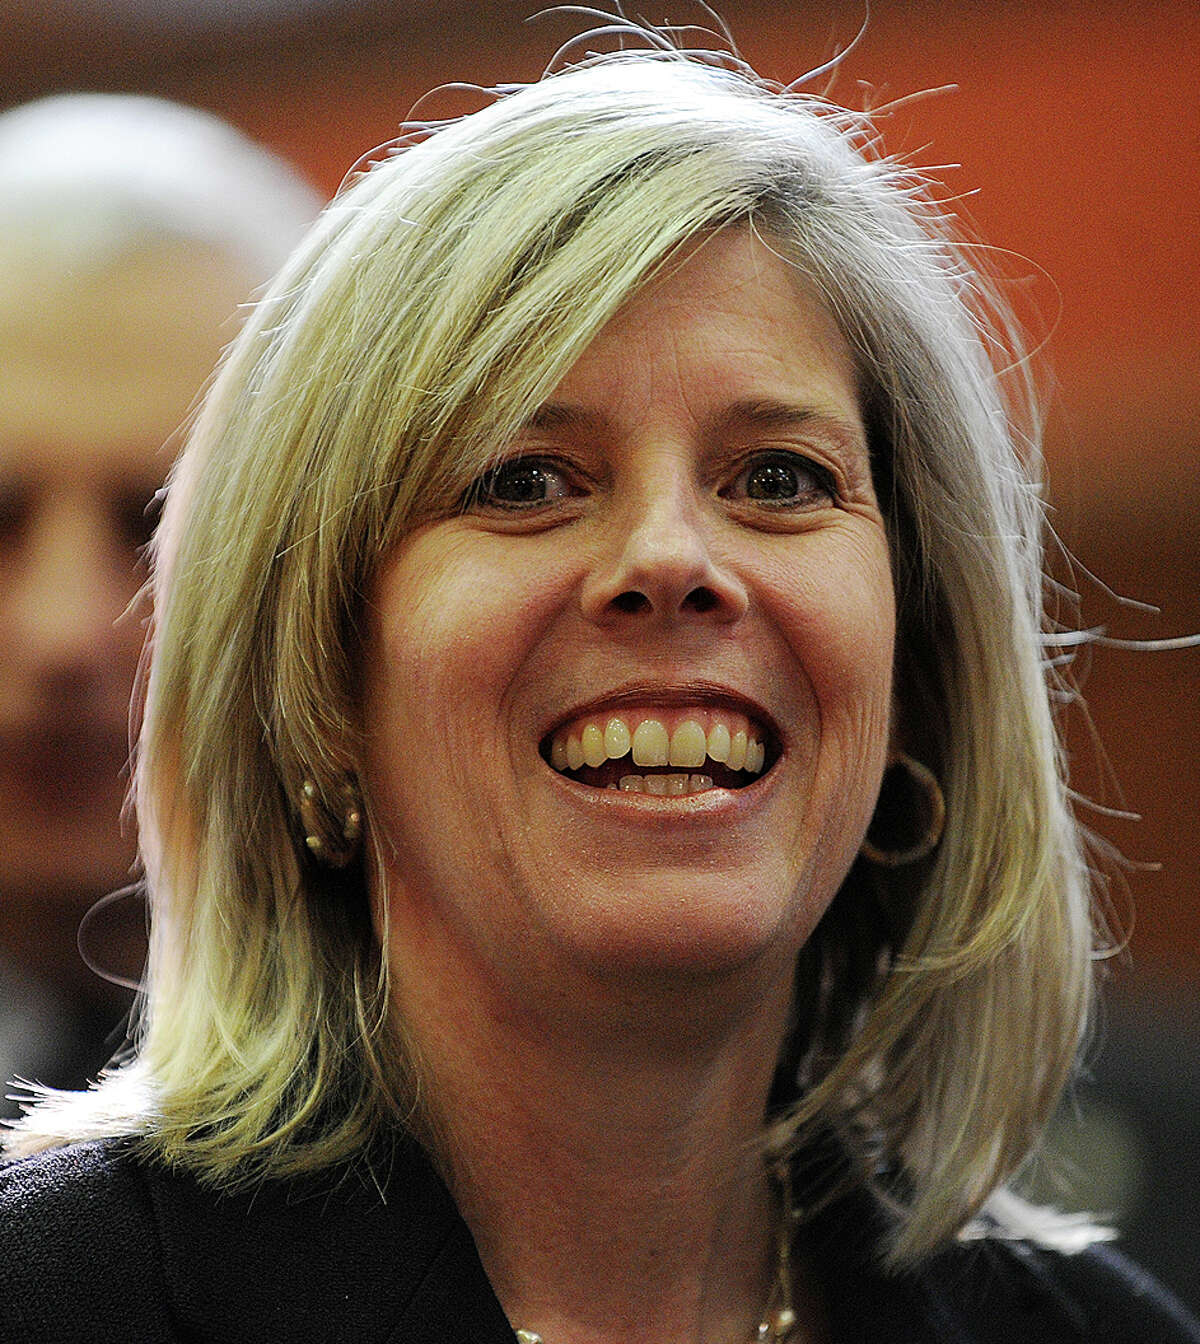 State Rep. Kim Fawcett, D-133, shown at the General Assembly in February, is expected to officially announce her candidacy for the state Senate seat in the 28th Dsitrict this year.